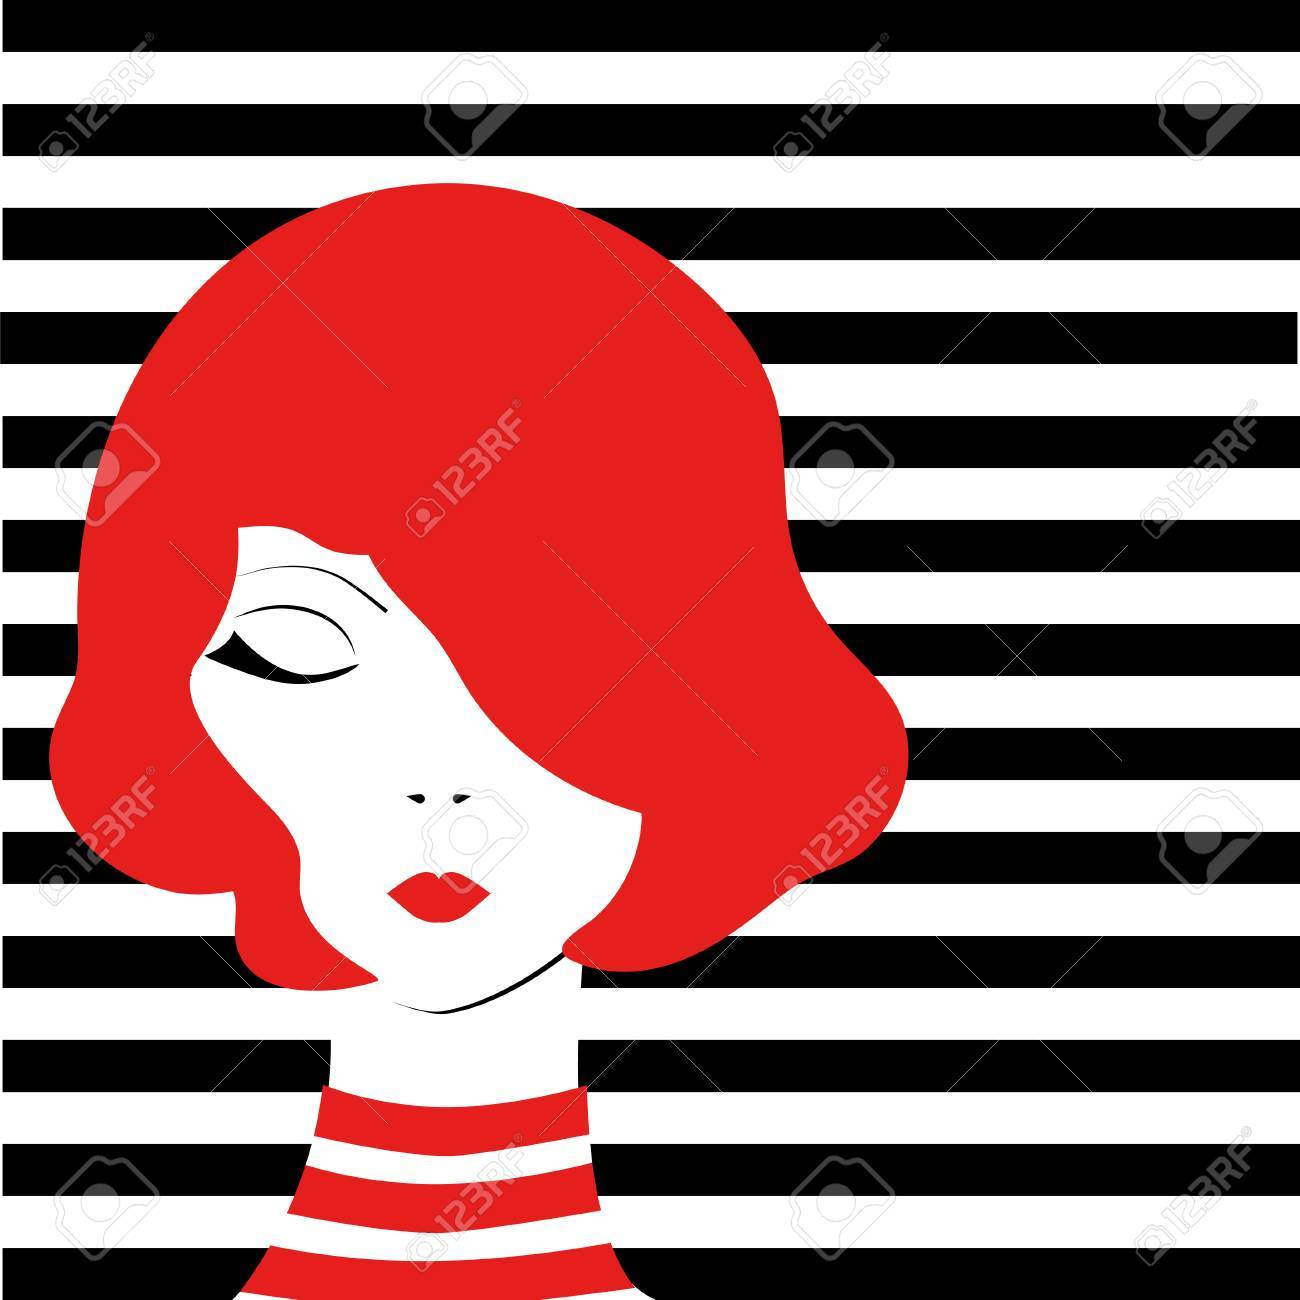 Redhead fashion pop art girl on black and white stripped background stock vector illustration